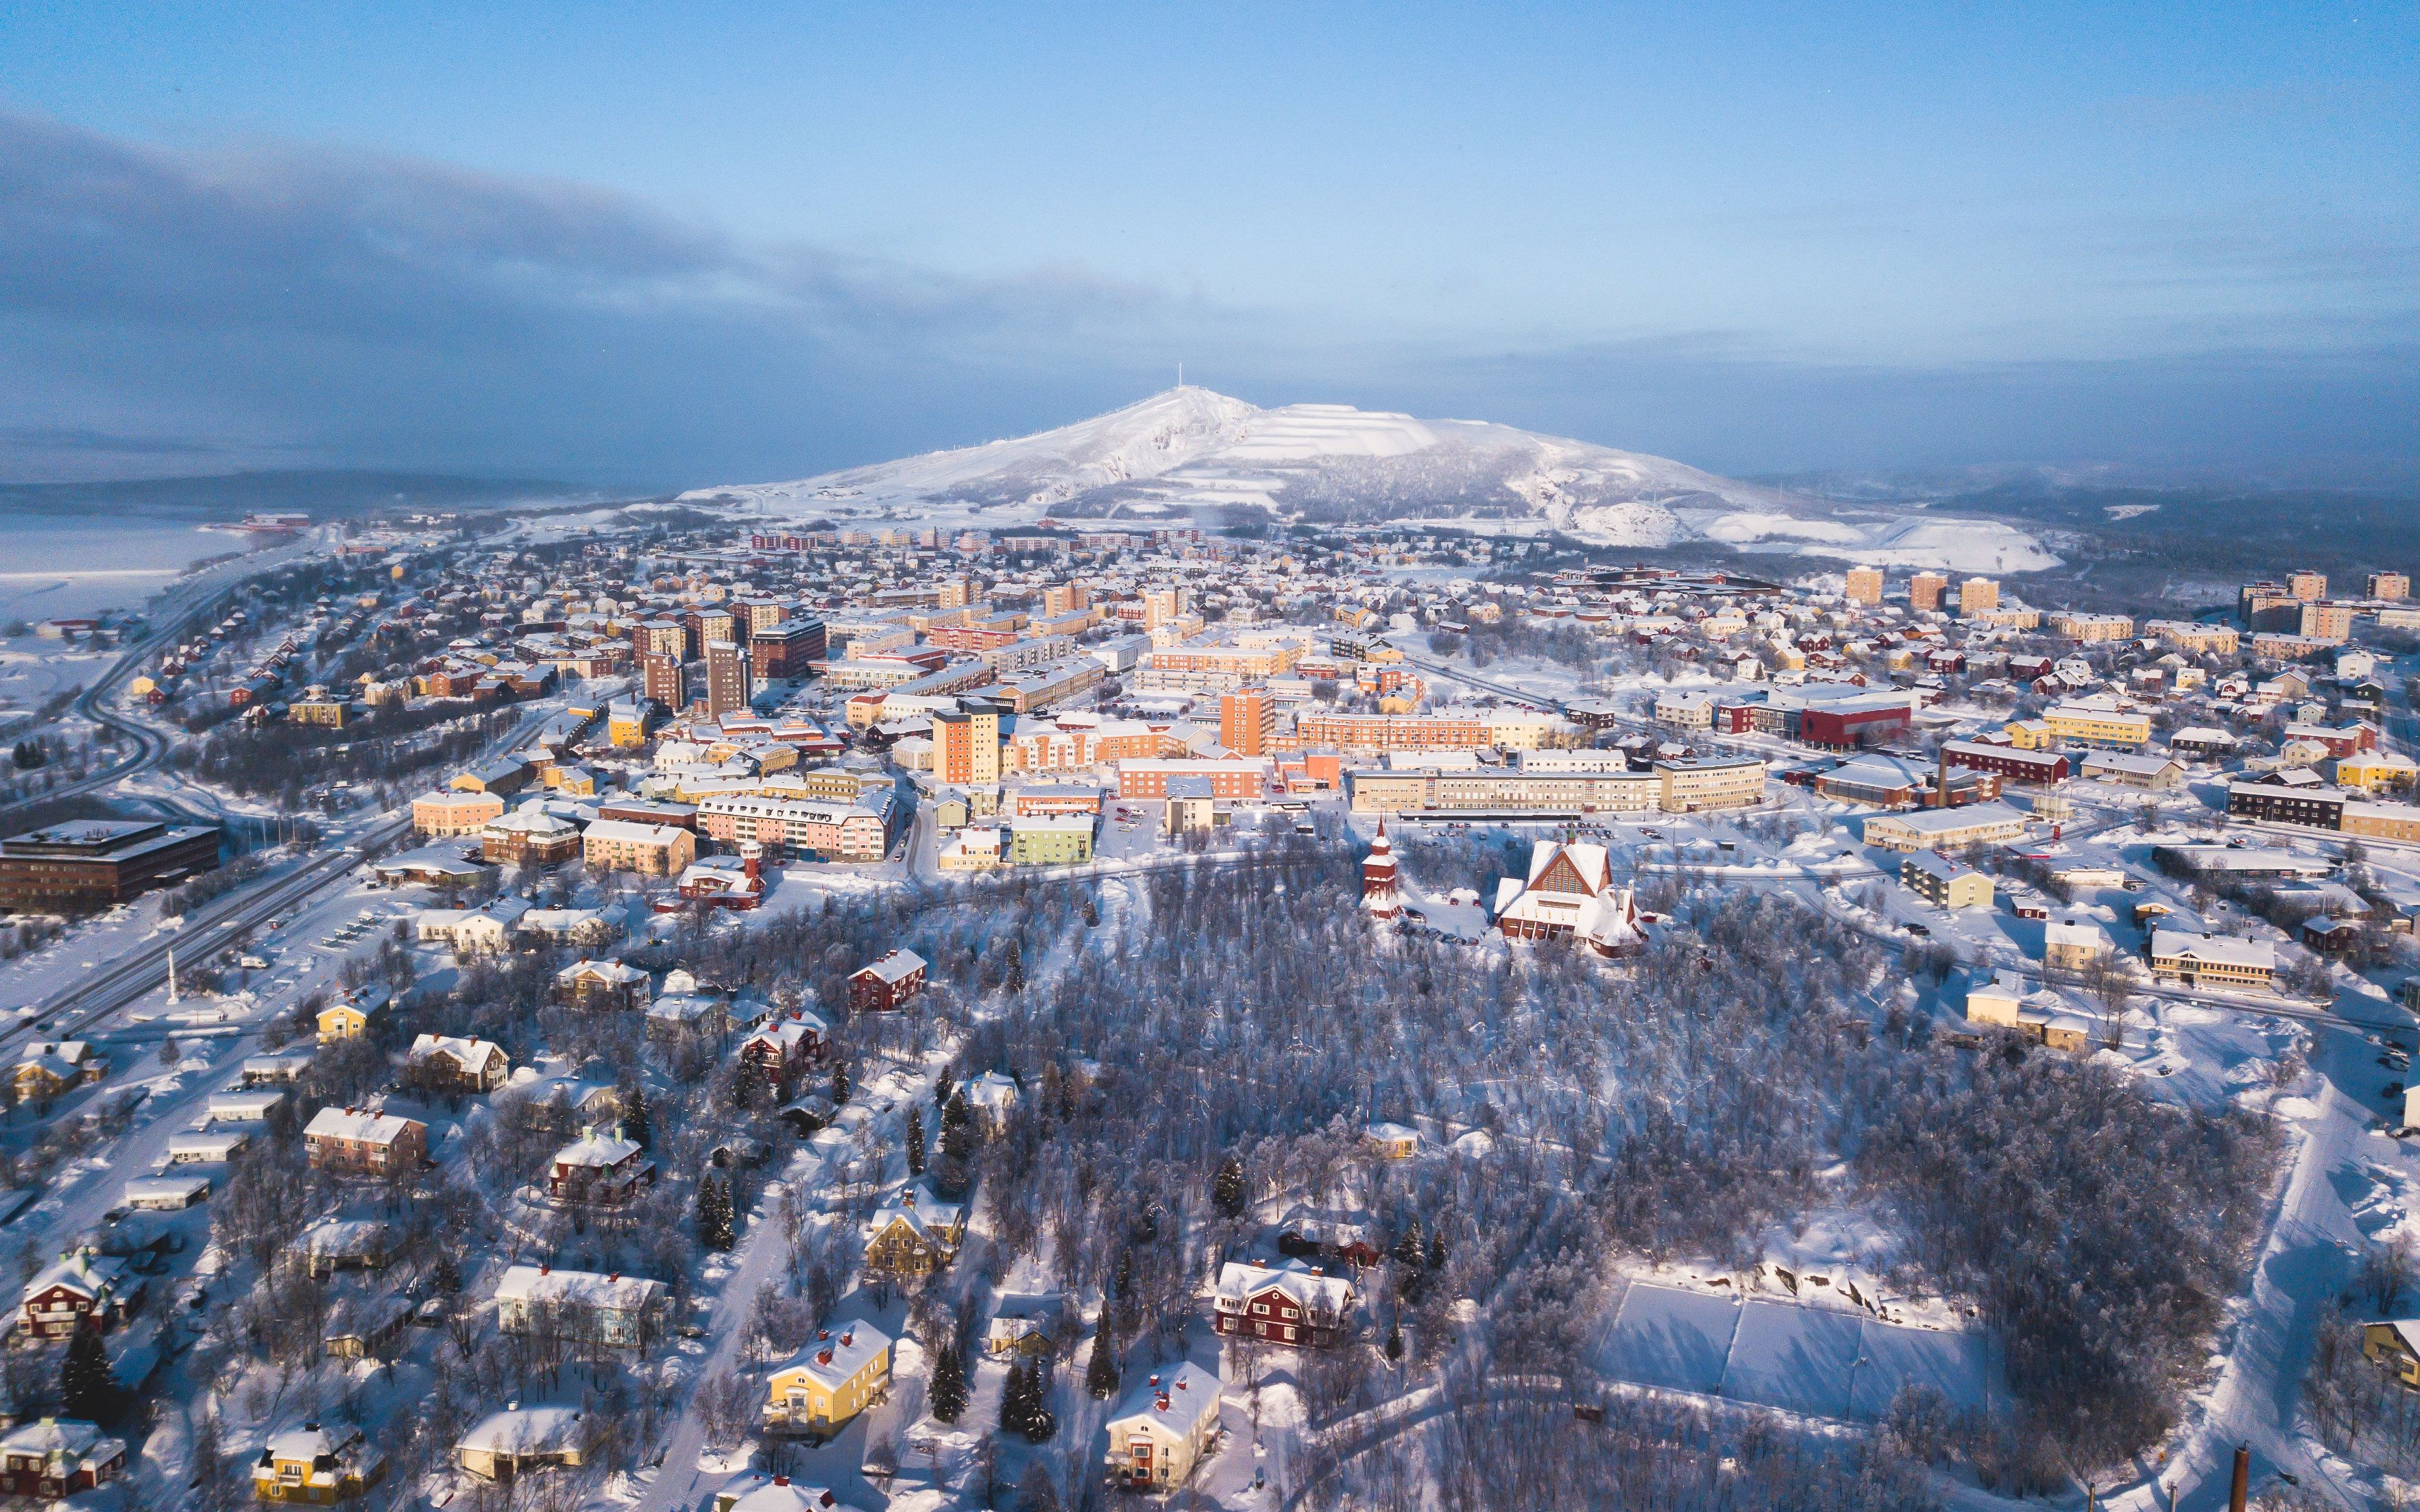 Kiruna, in northern Sweden, is being moved because it's threatened by iron ore mining deep beneath the city.